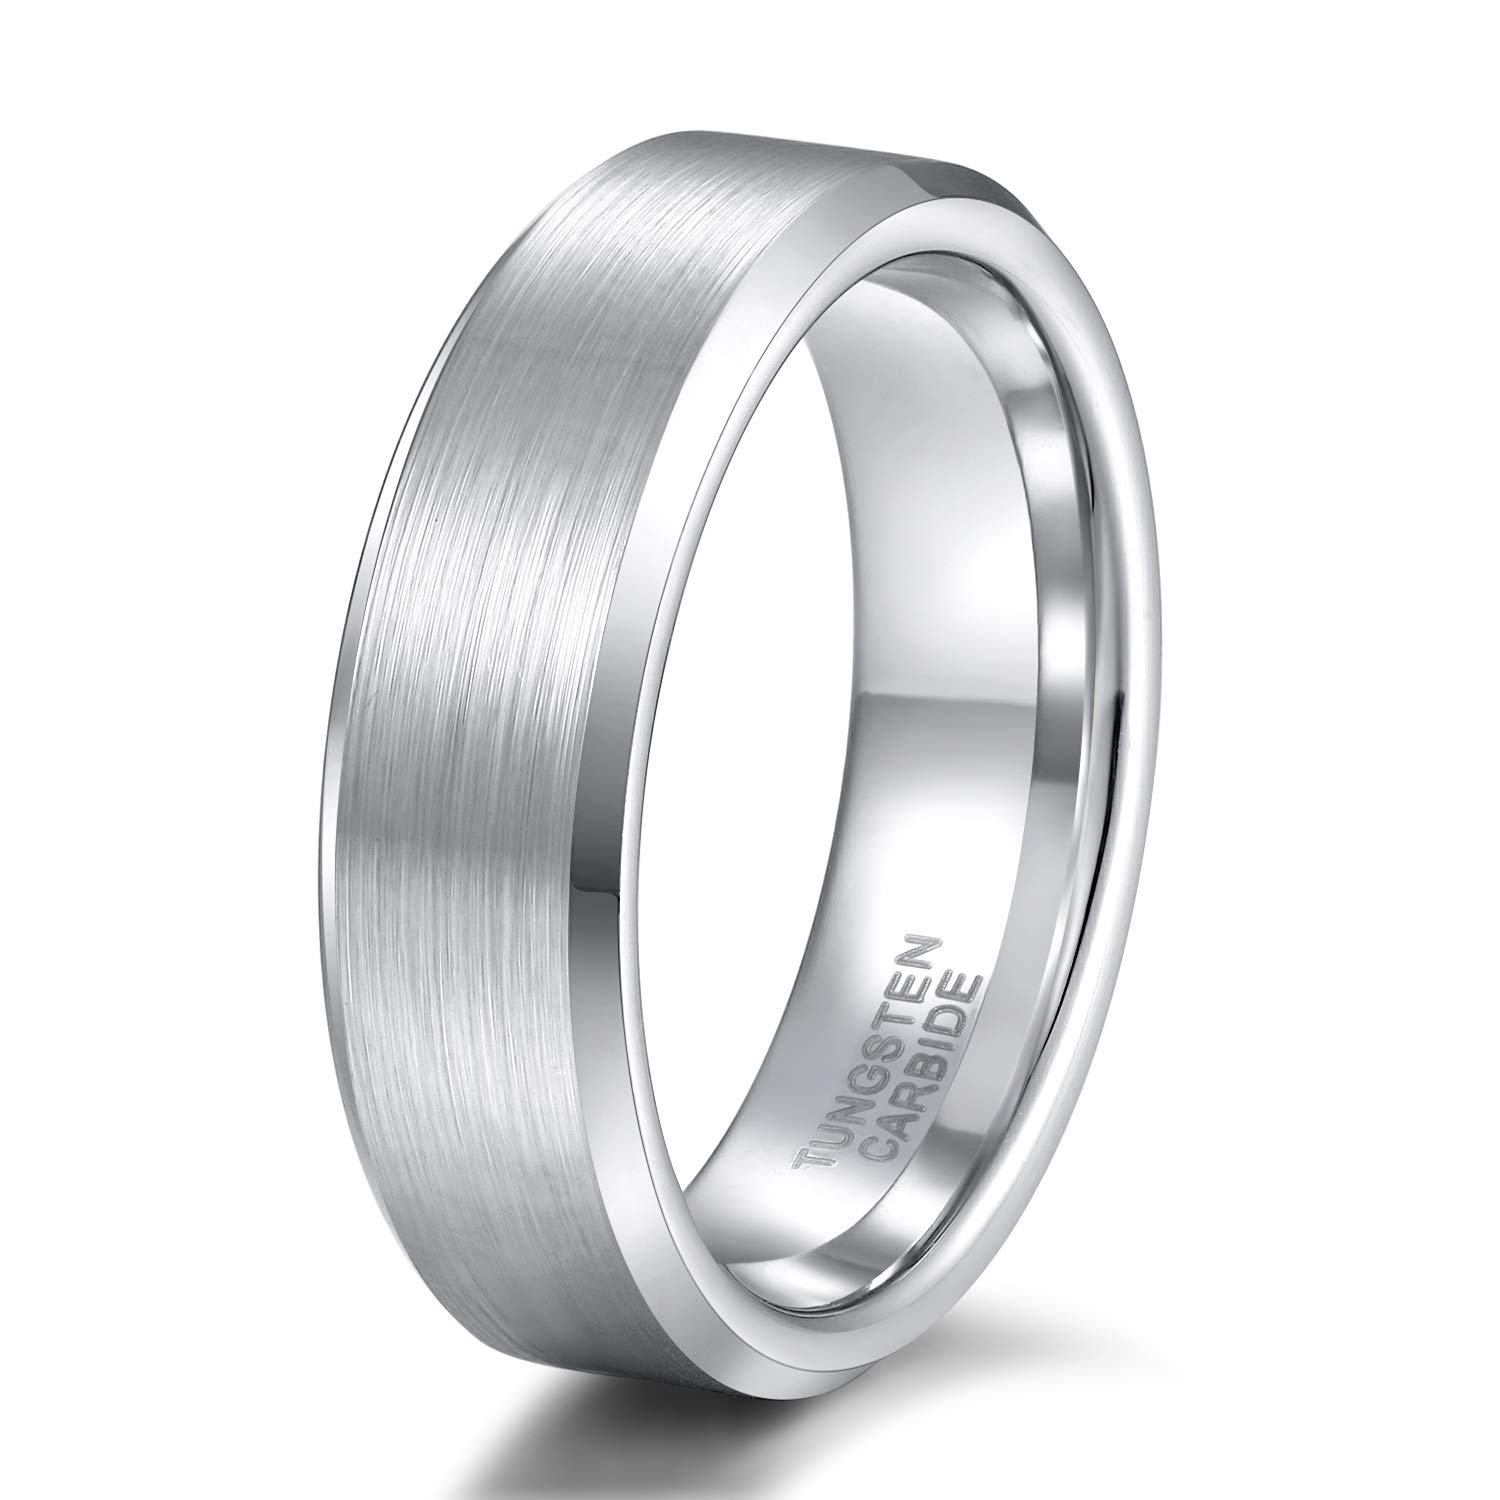 Shuremaster 4mm 6mm 8mm Tungsten Carbide Wedding Band Men Women Engraved I Love You Couple Ring Black/Silver Beveled Edges Brushed Size 4-15